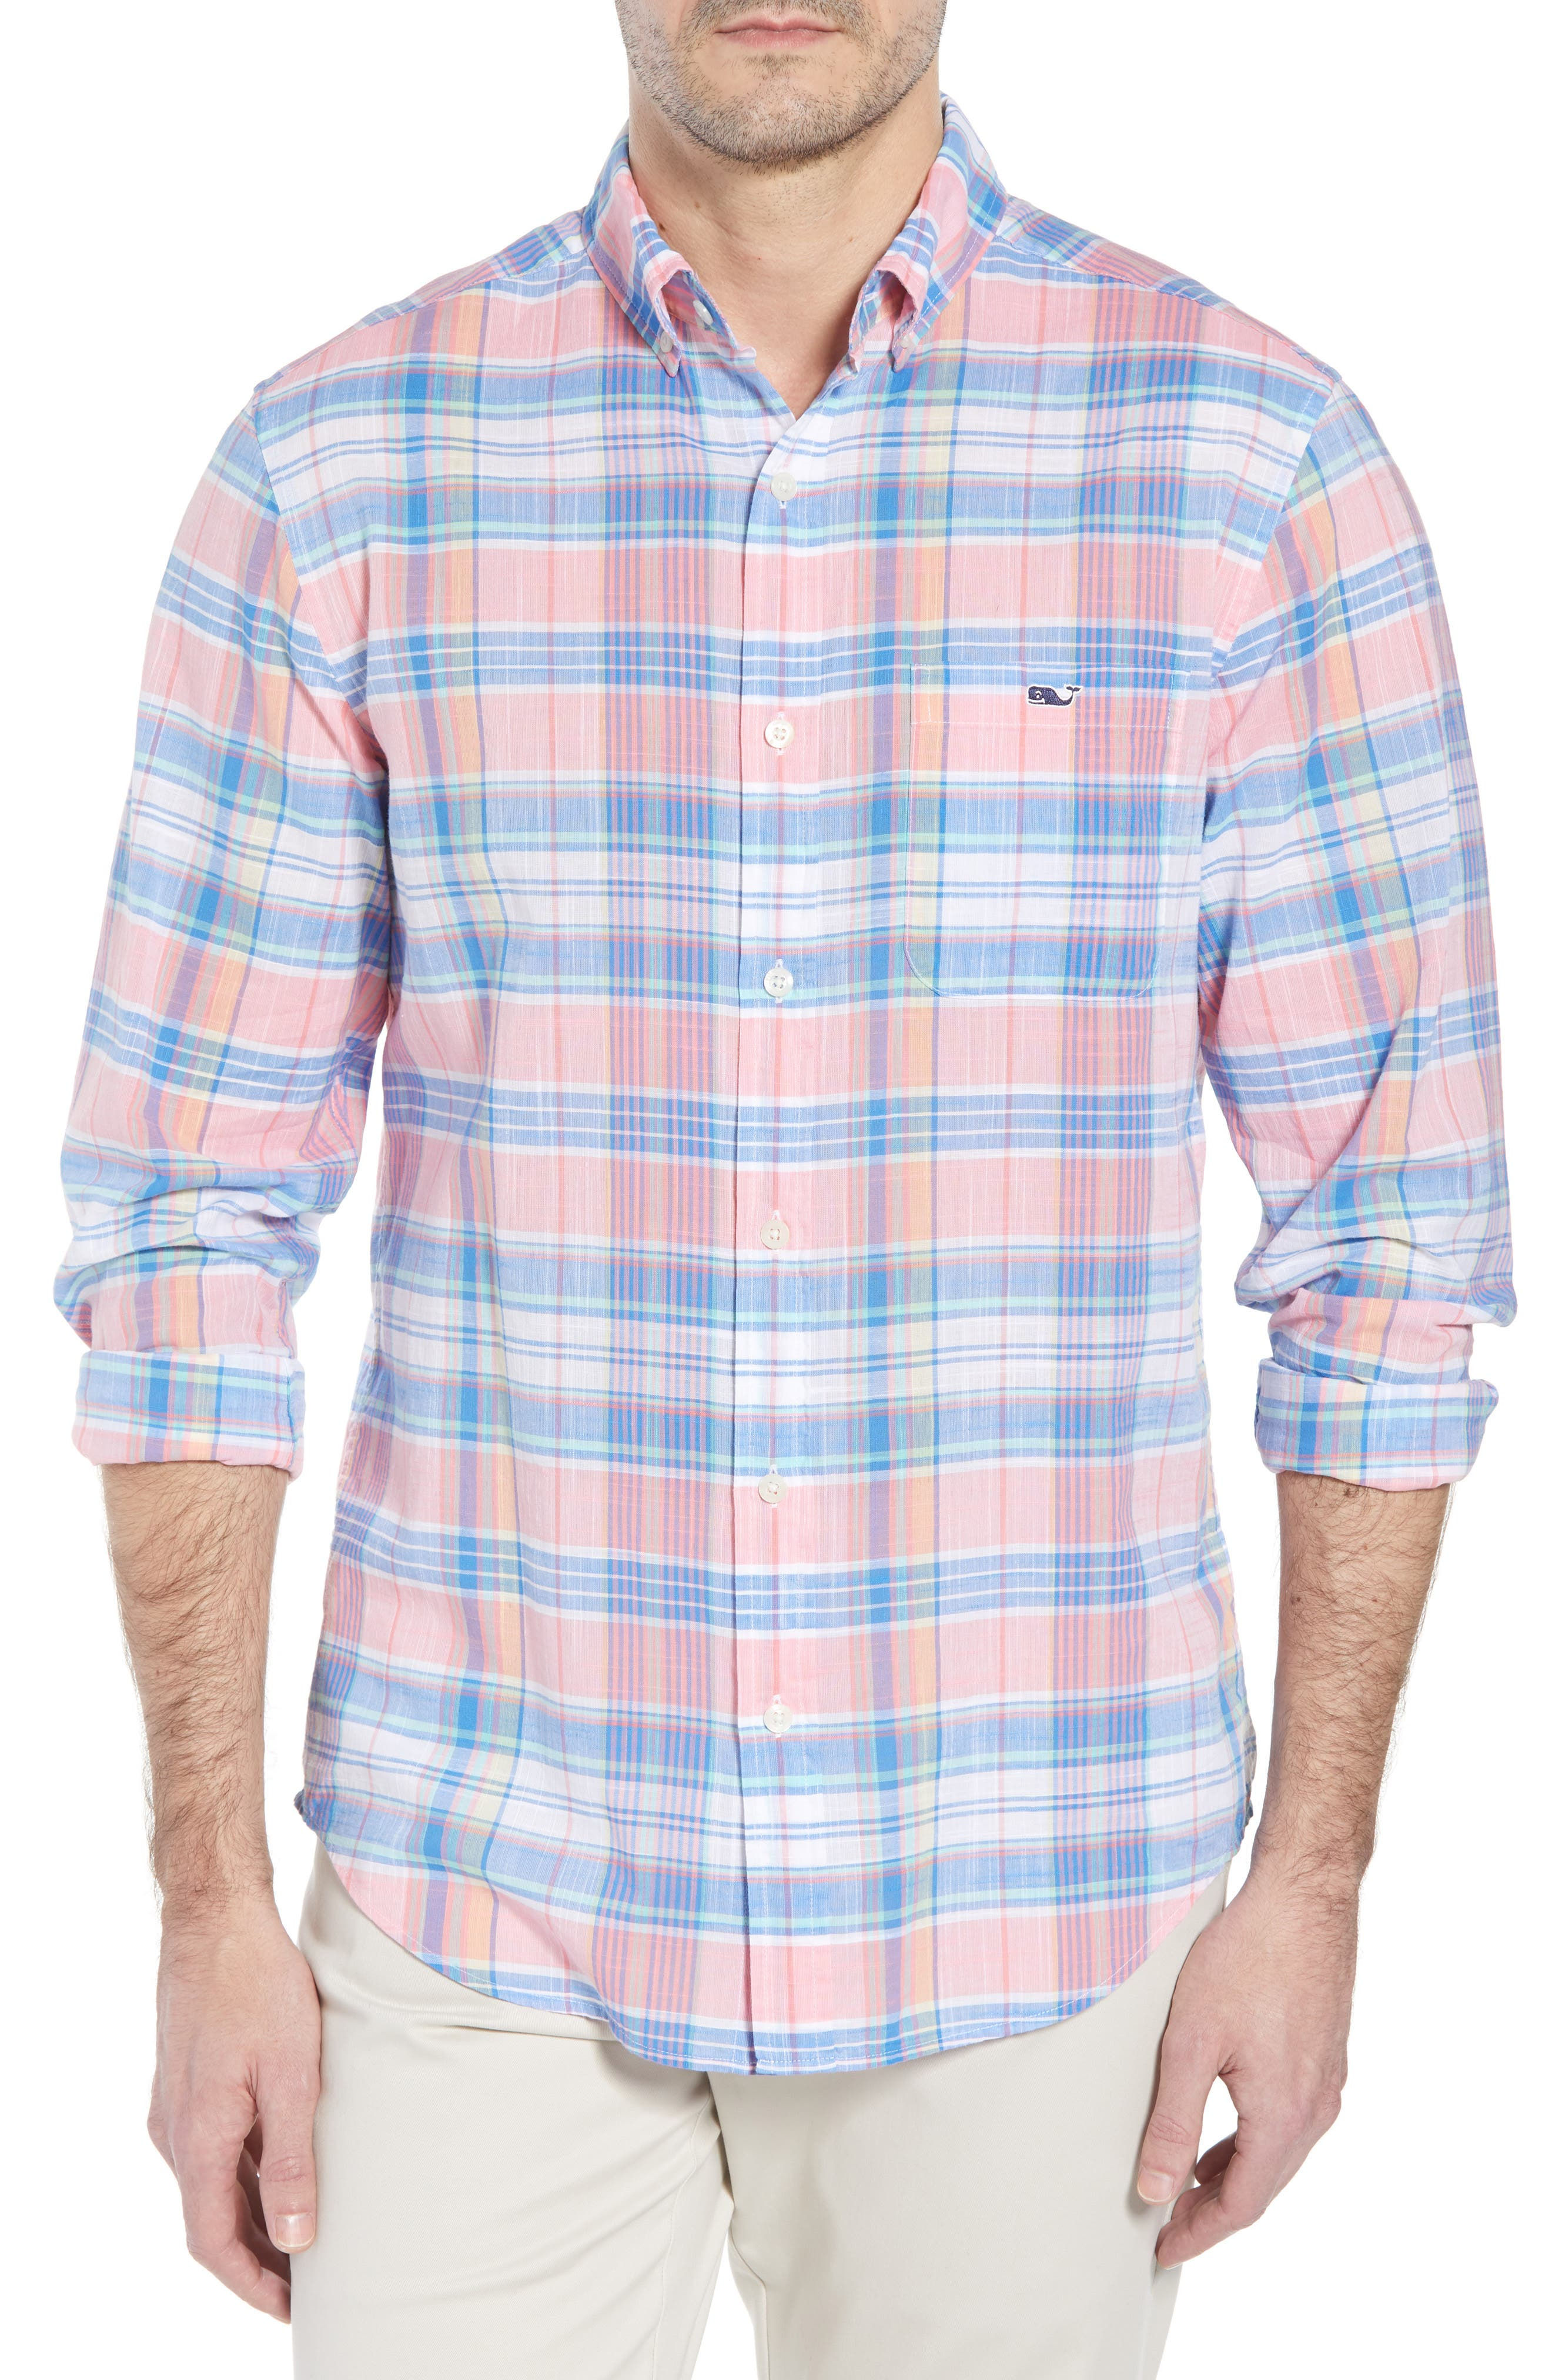 Smith Point Tucker Classic Fit Plaid Sport Shirt,                         Main,                         color, Washed Neon Pink